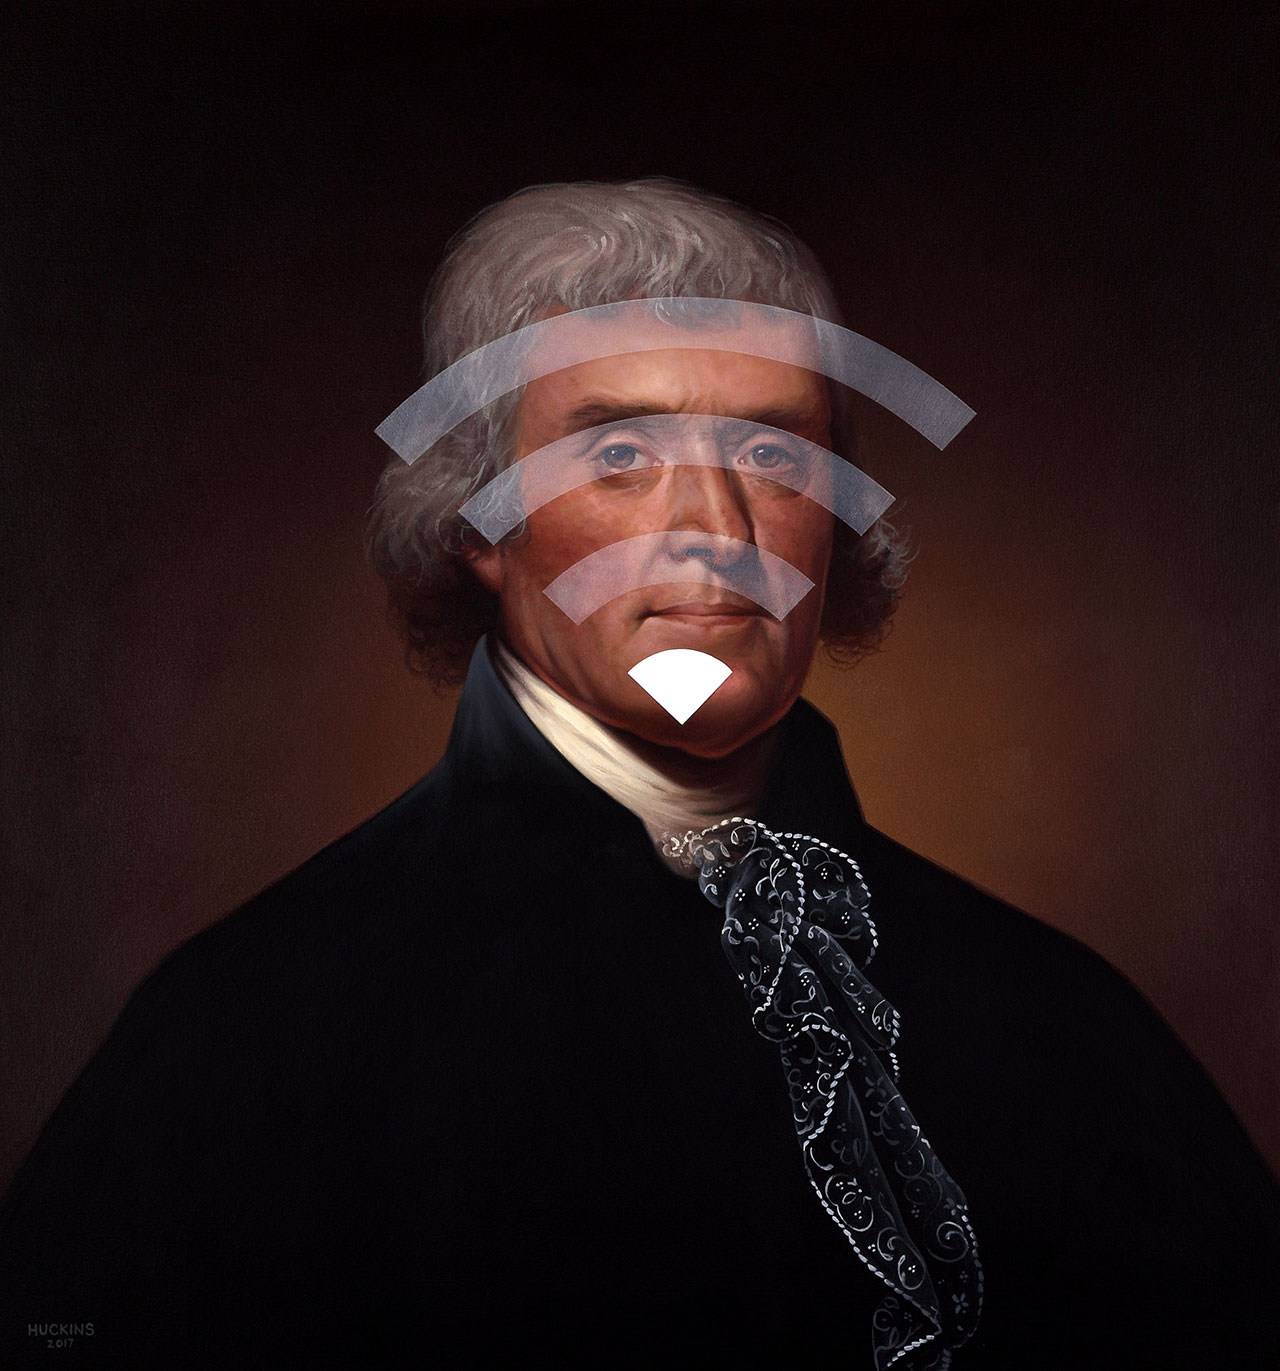 Shawn Huckins, Thomas Jefferson: Panic Four (Spotty WiFi), 2017. Acrylic on canvas, 32 x 30 in (81 x 76 cm).